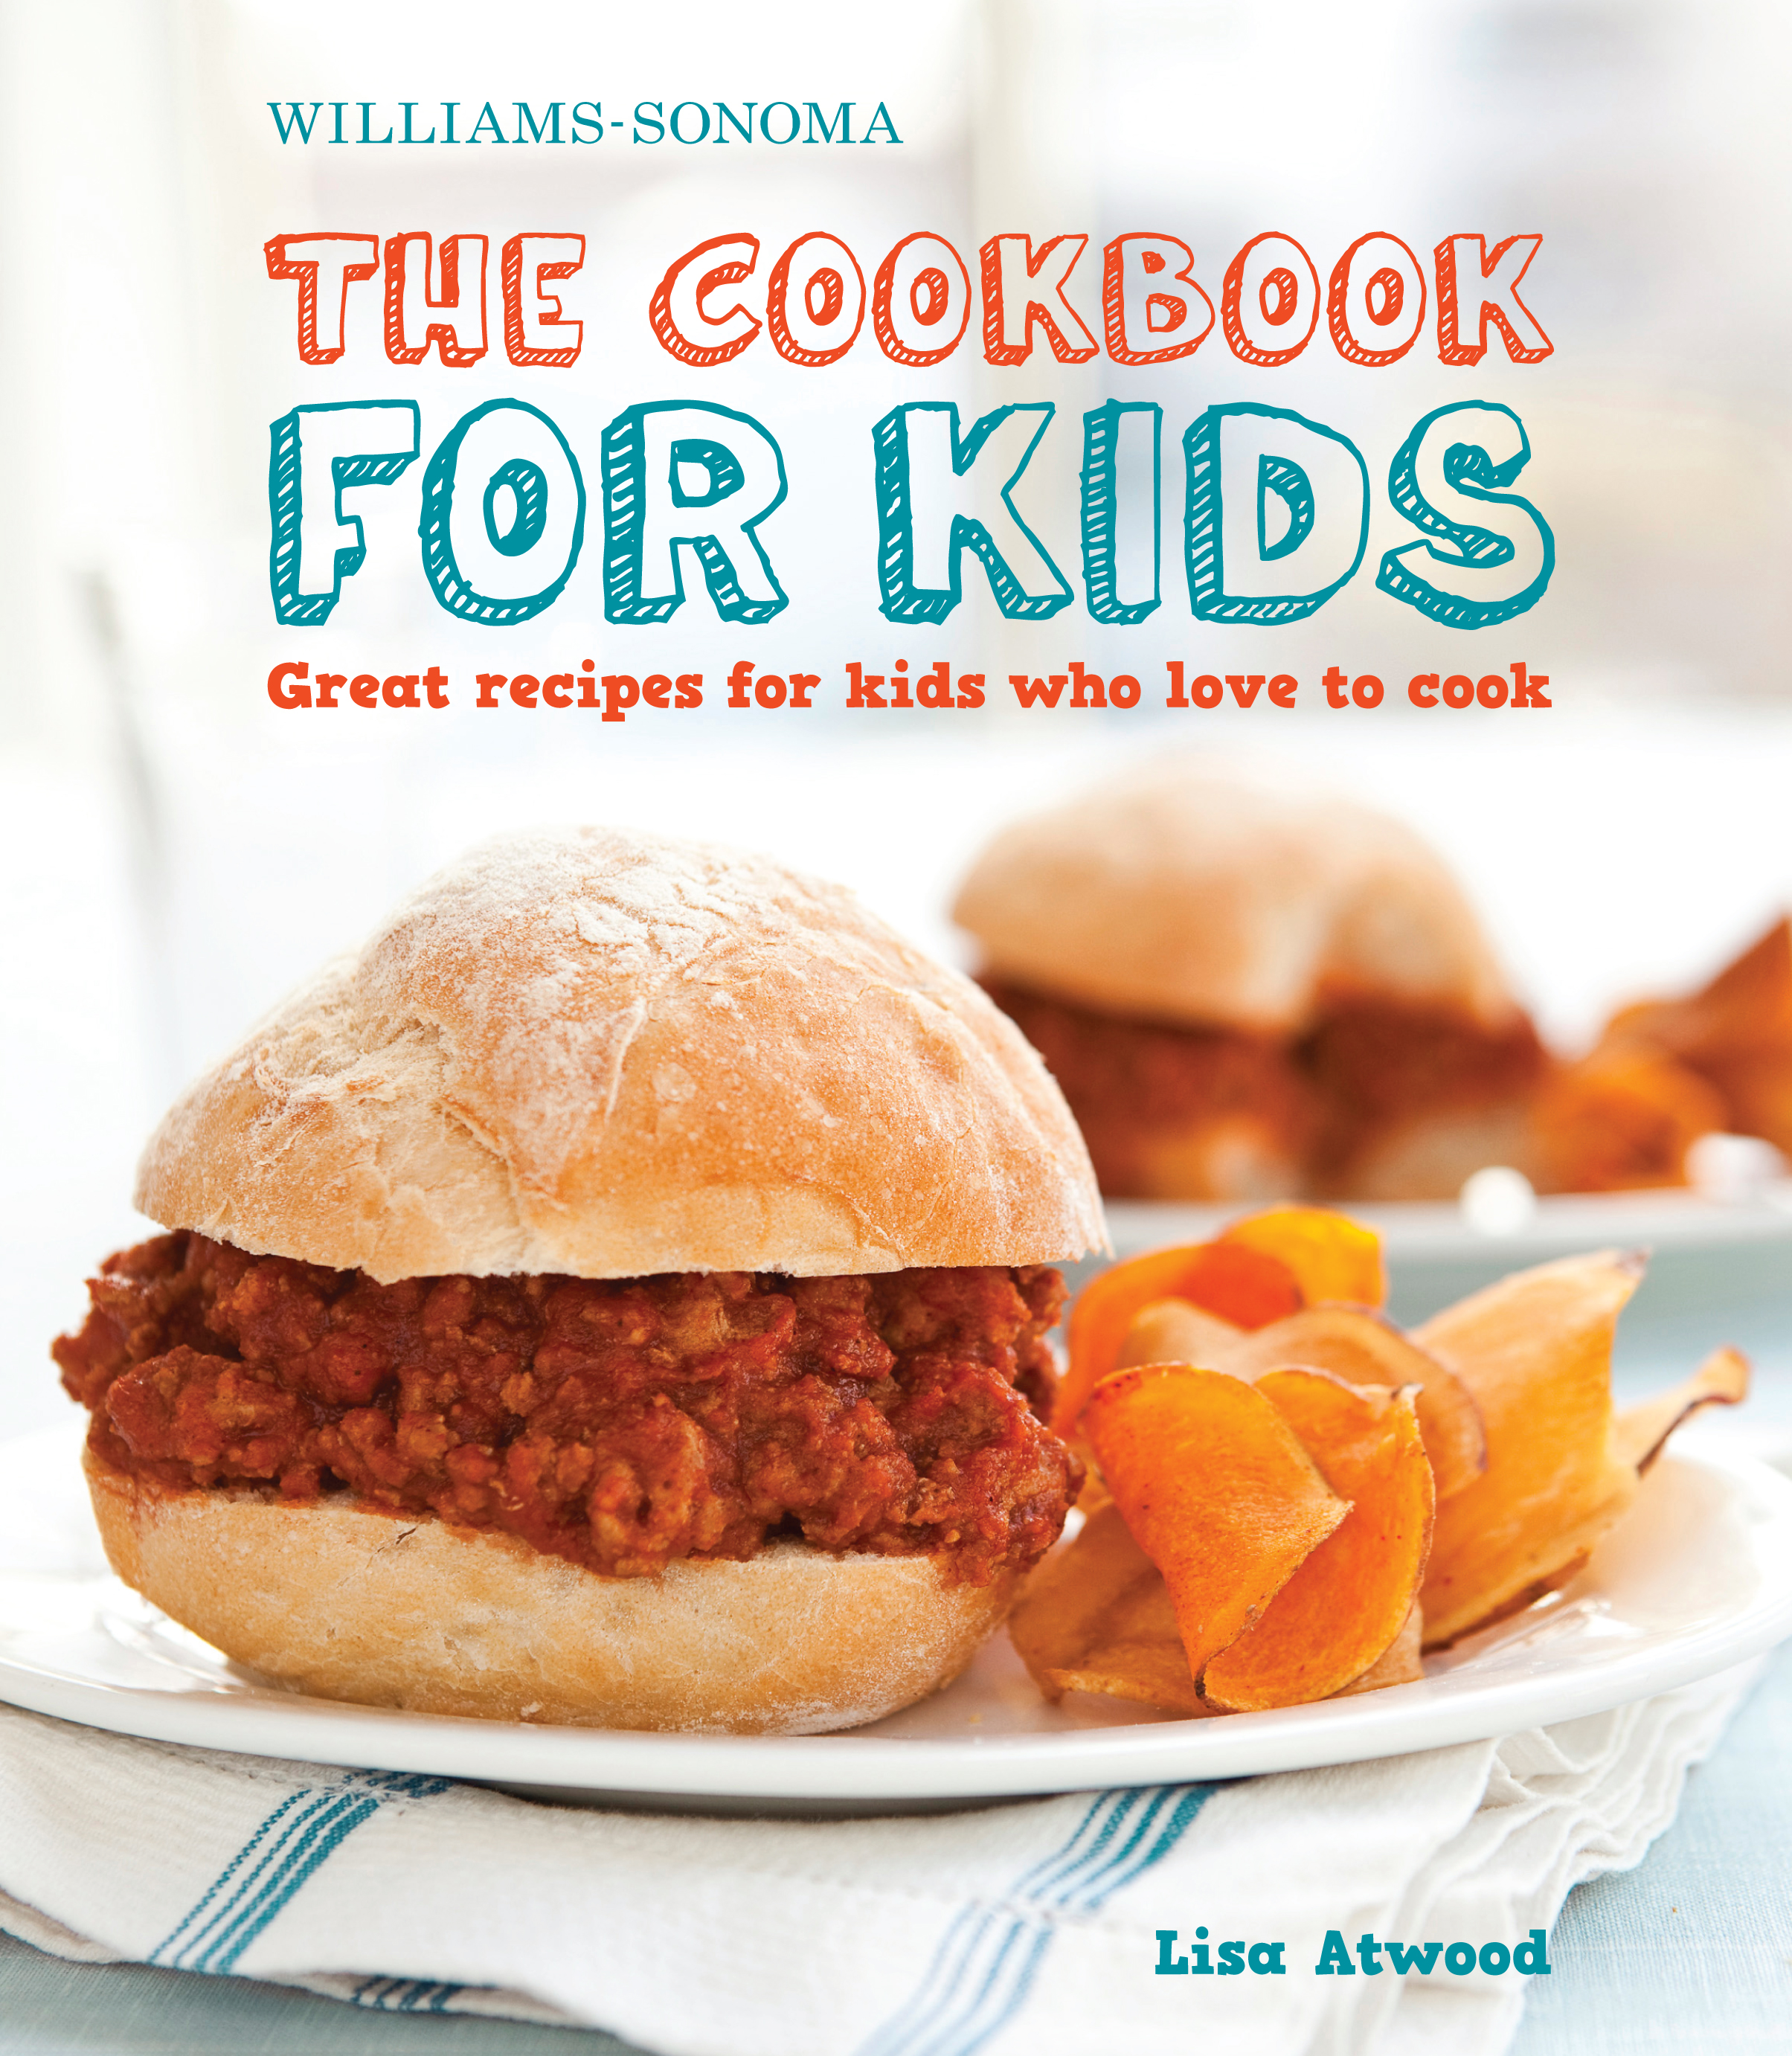 Cookbook Covers For Kids : The cookbook for kids williams sonoma book by lisa